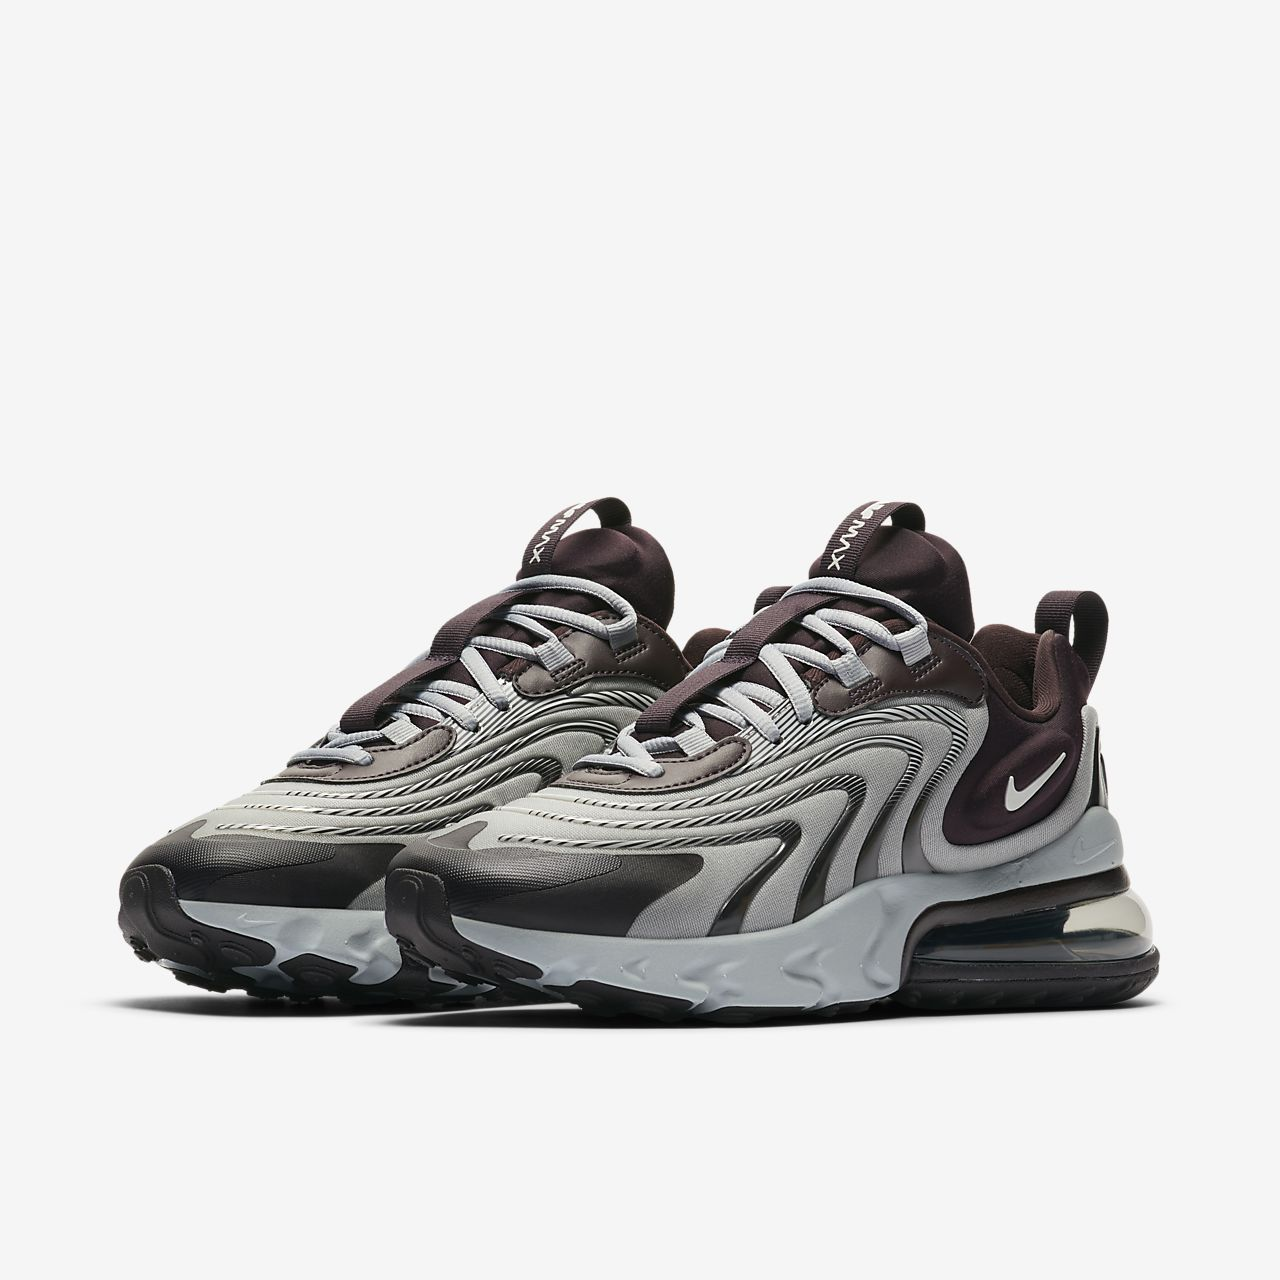 "Nike Air Max 270 React ENG ""Burgundy Ash"" Release Date"